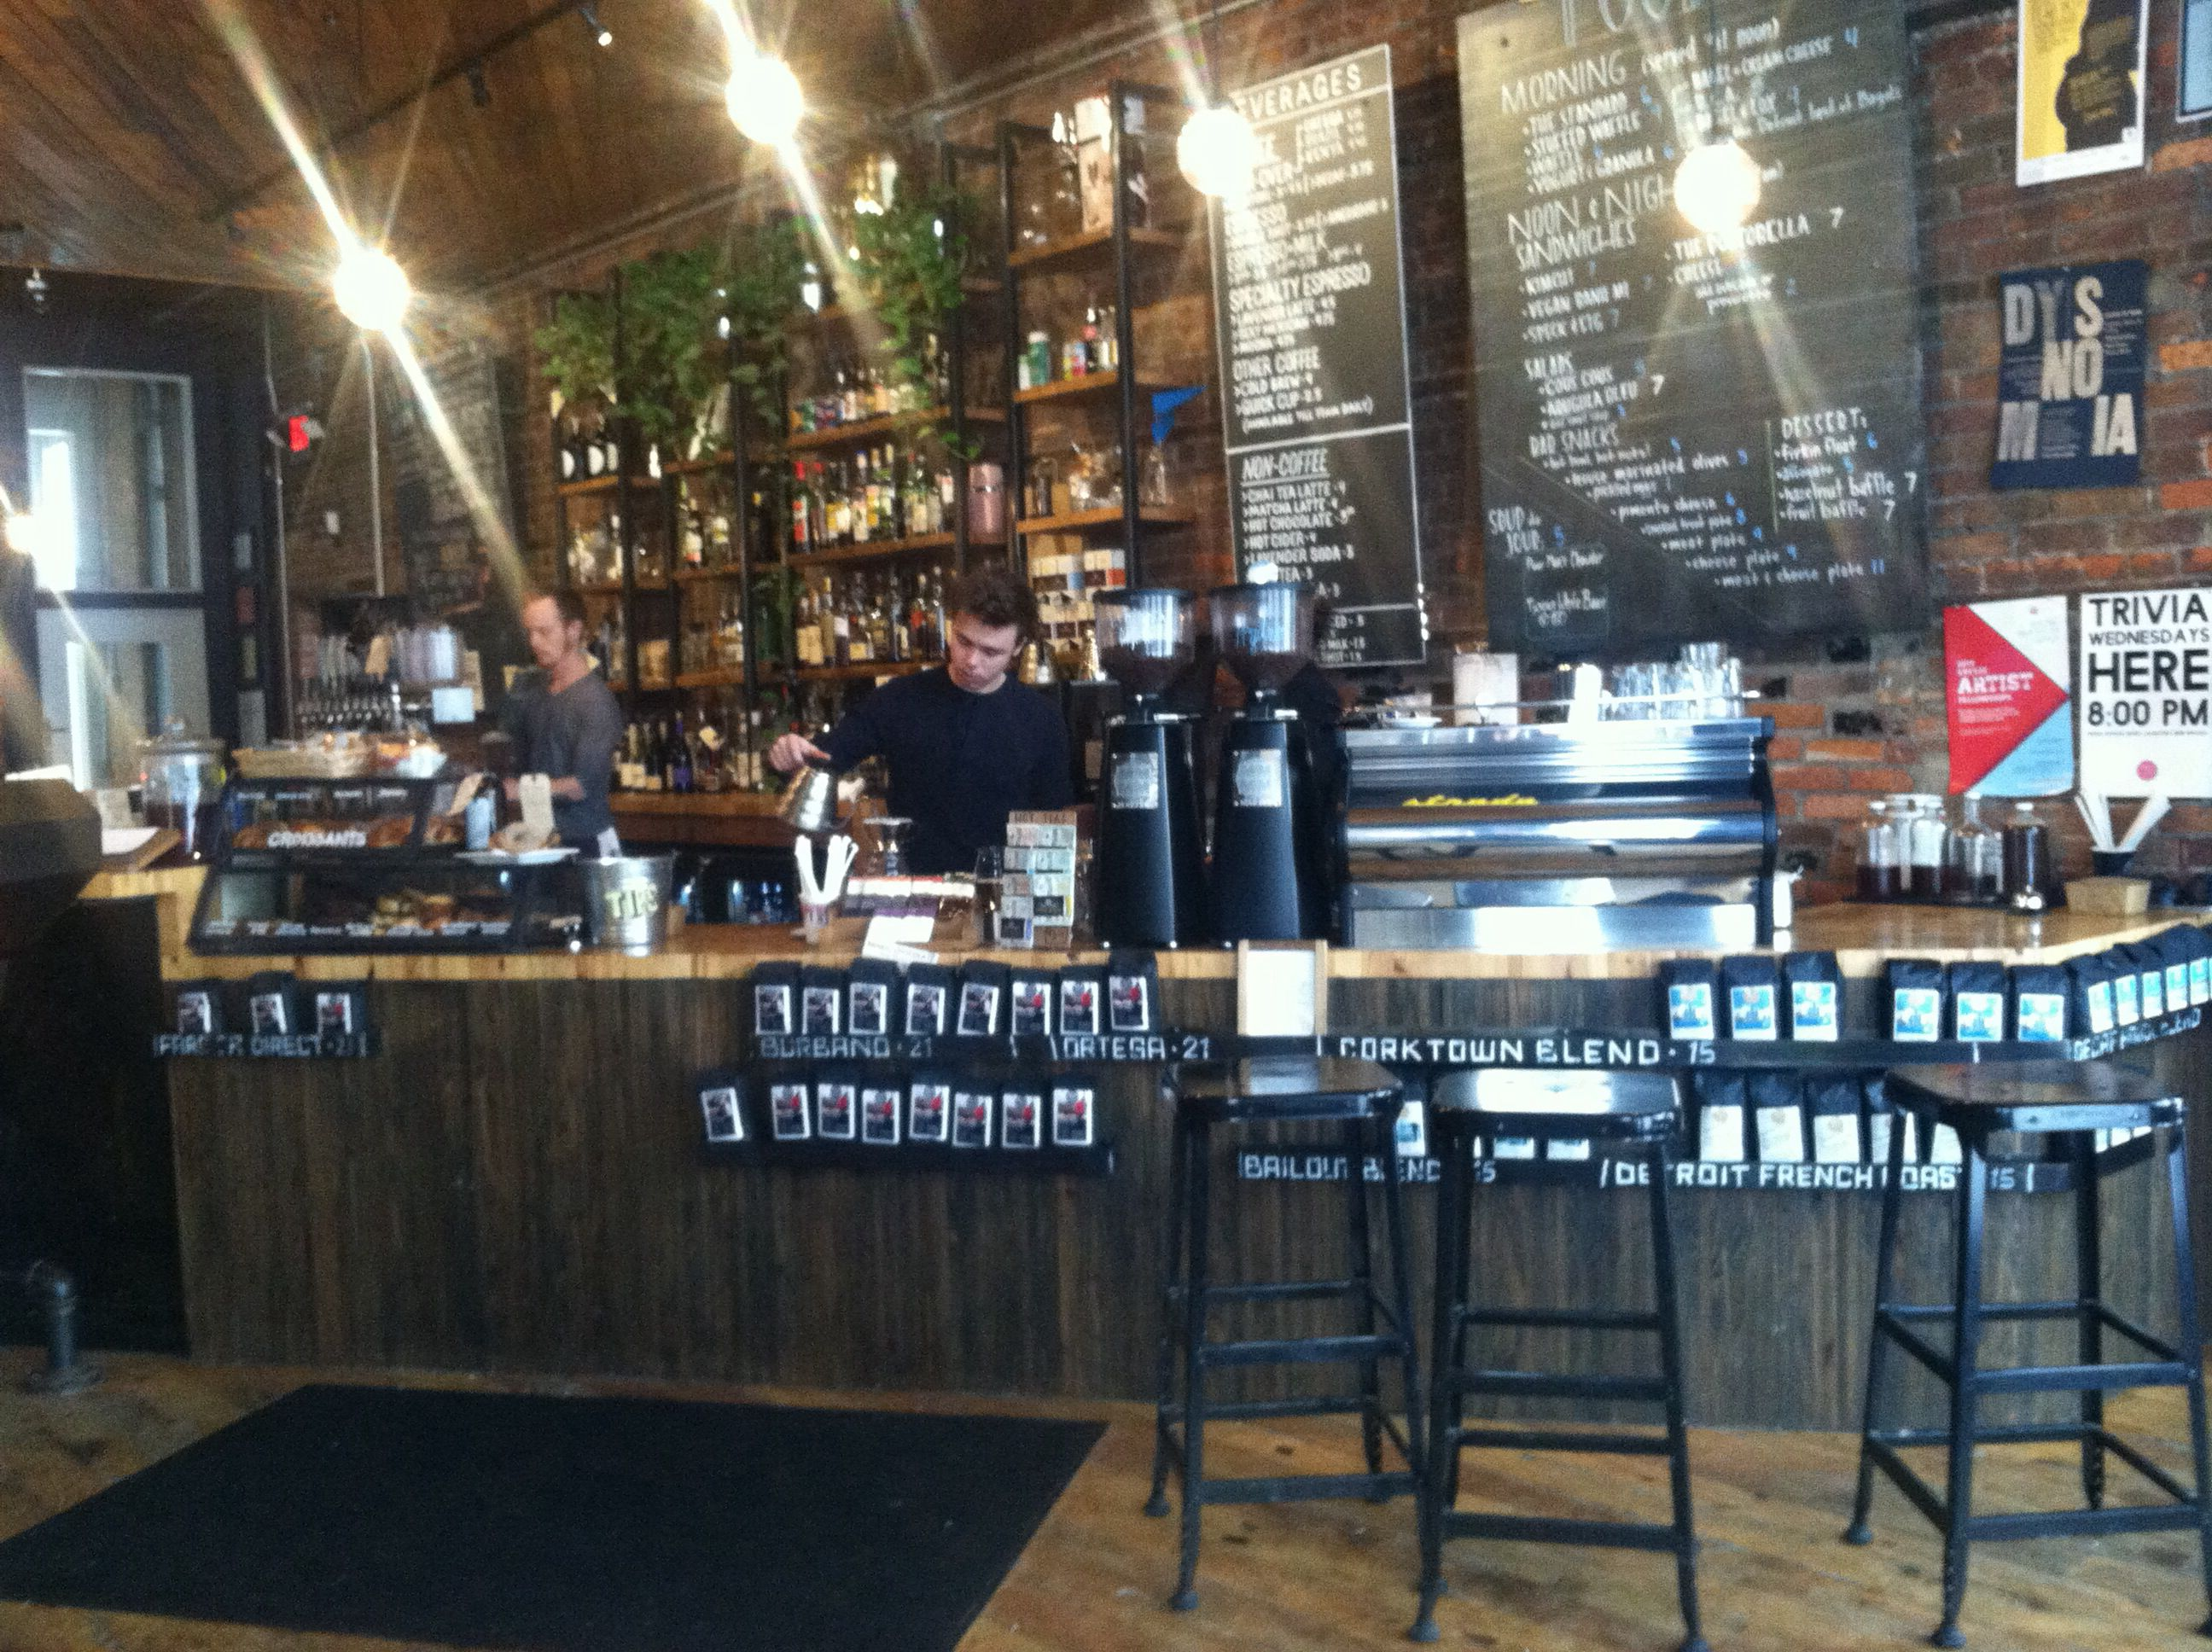 Great lakes coffee in detroit mi good blend of bar and